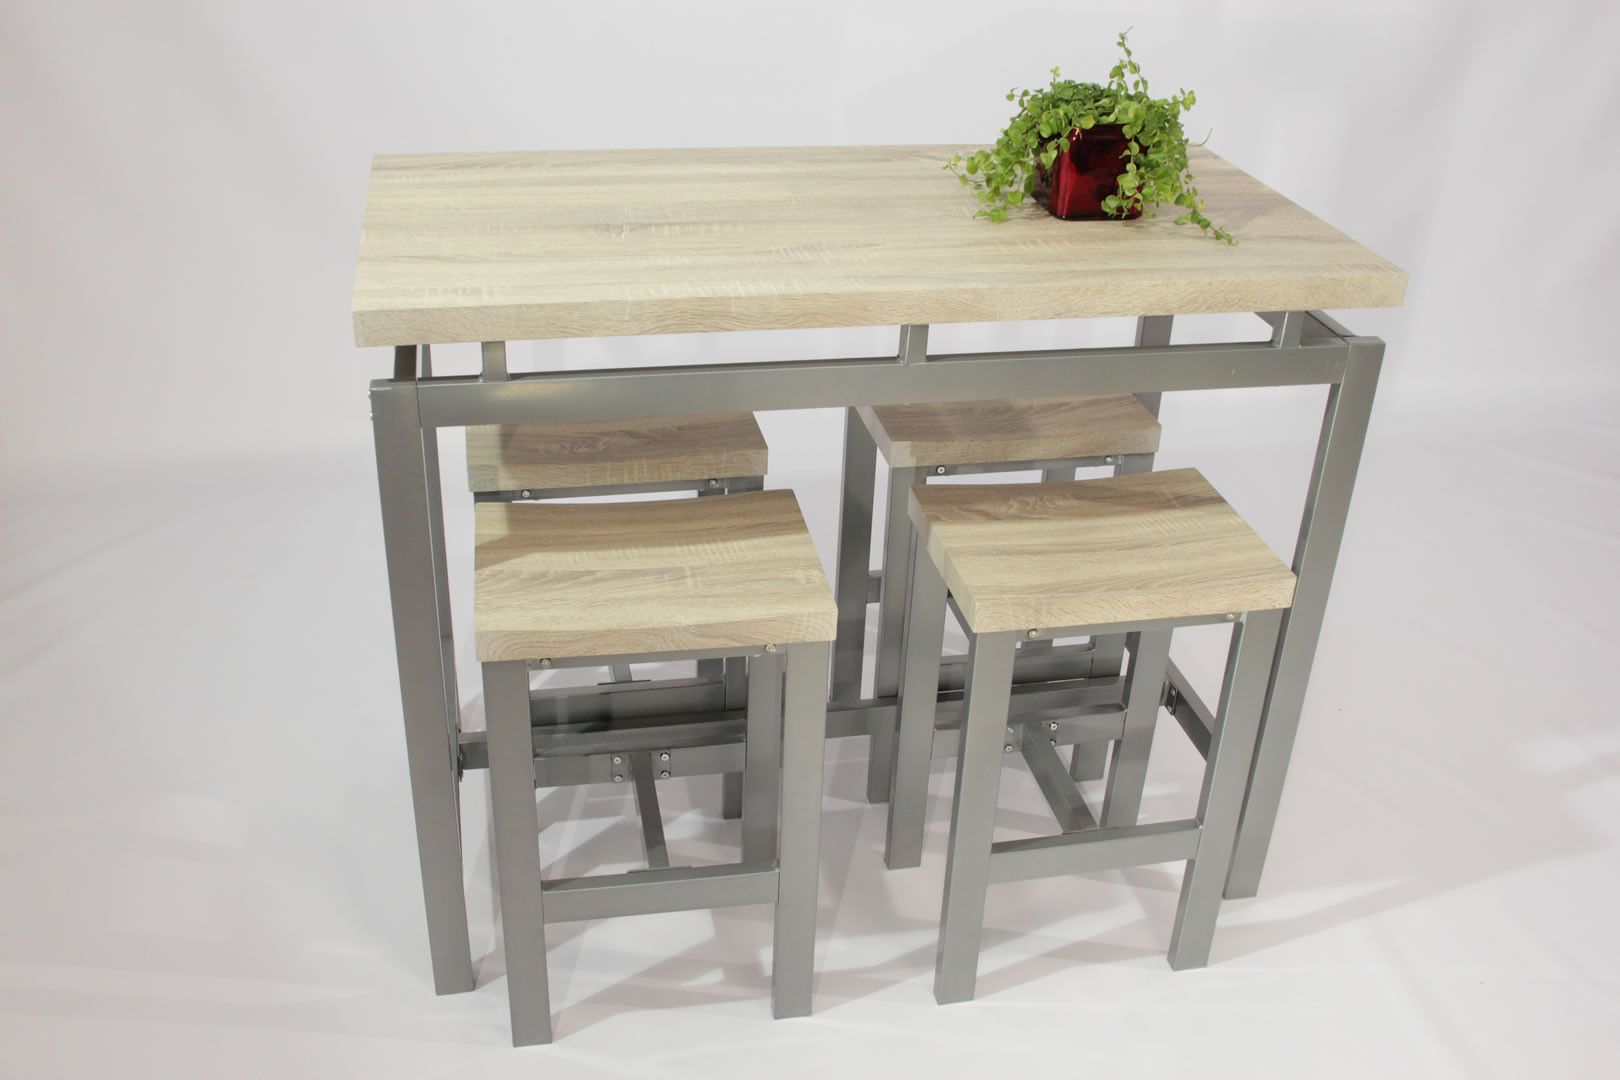 Table Haute Tabourets Tables Hautes Ensemble Table Haute Et Tabourets Nampa